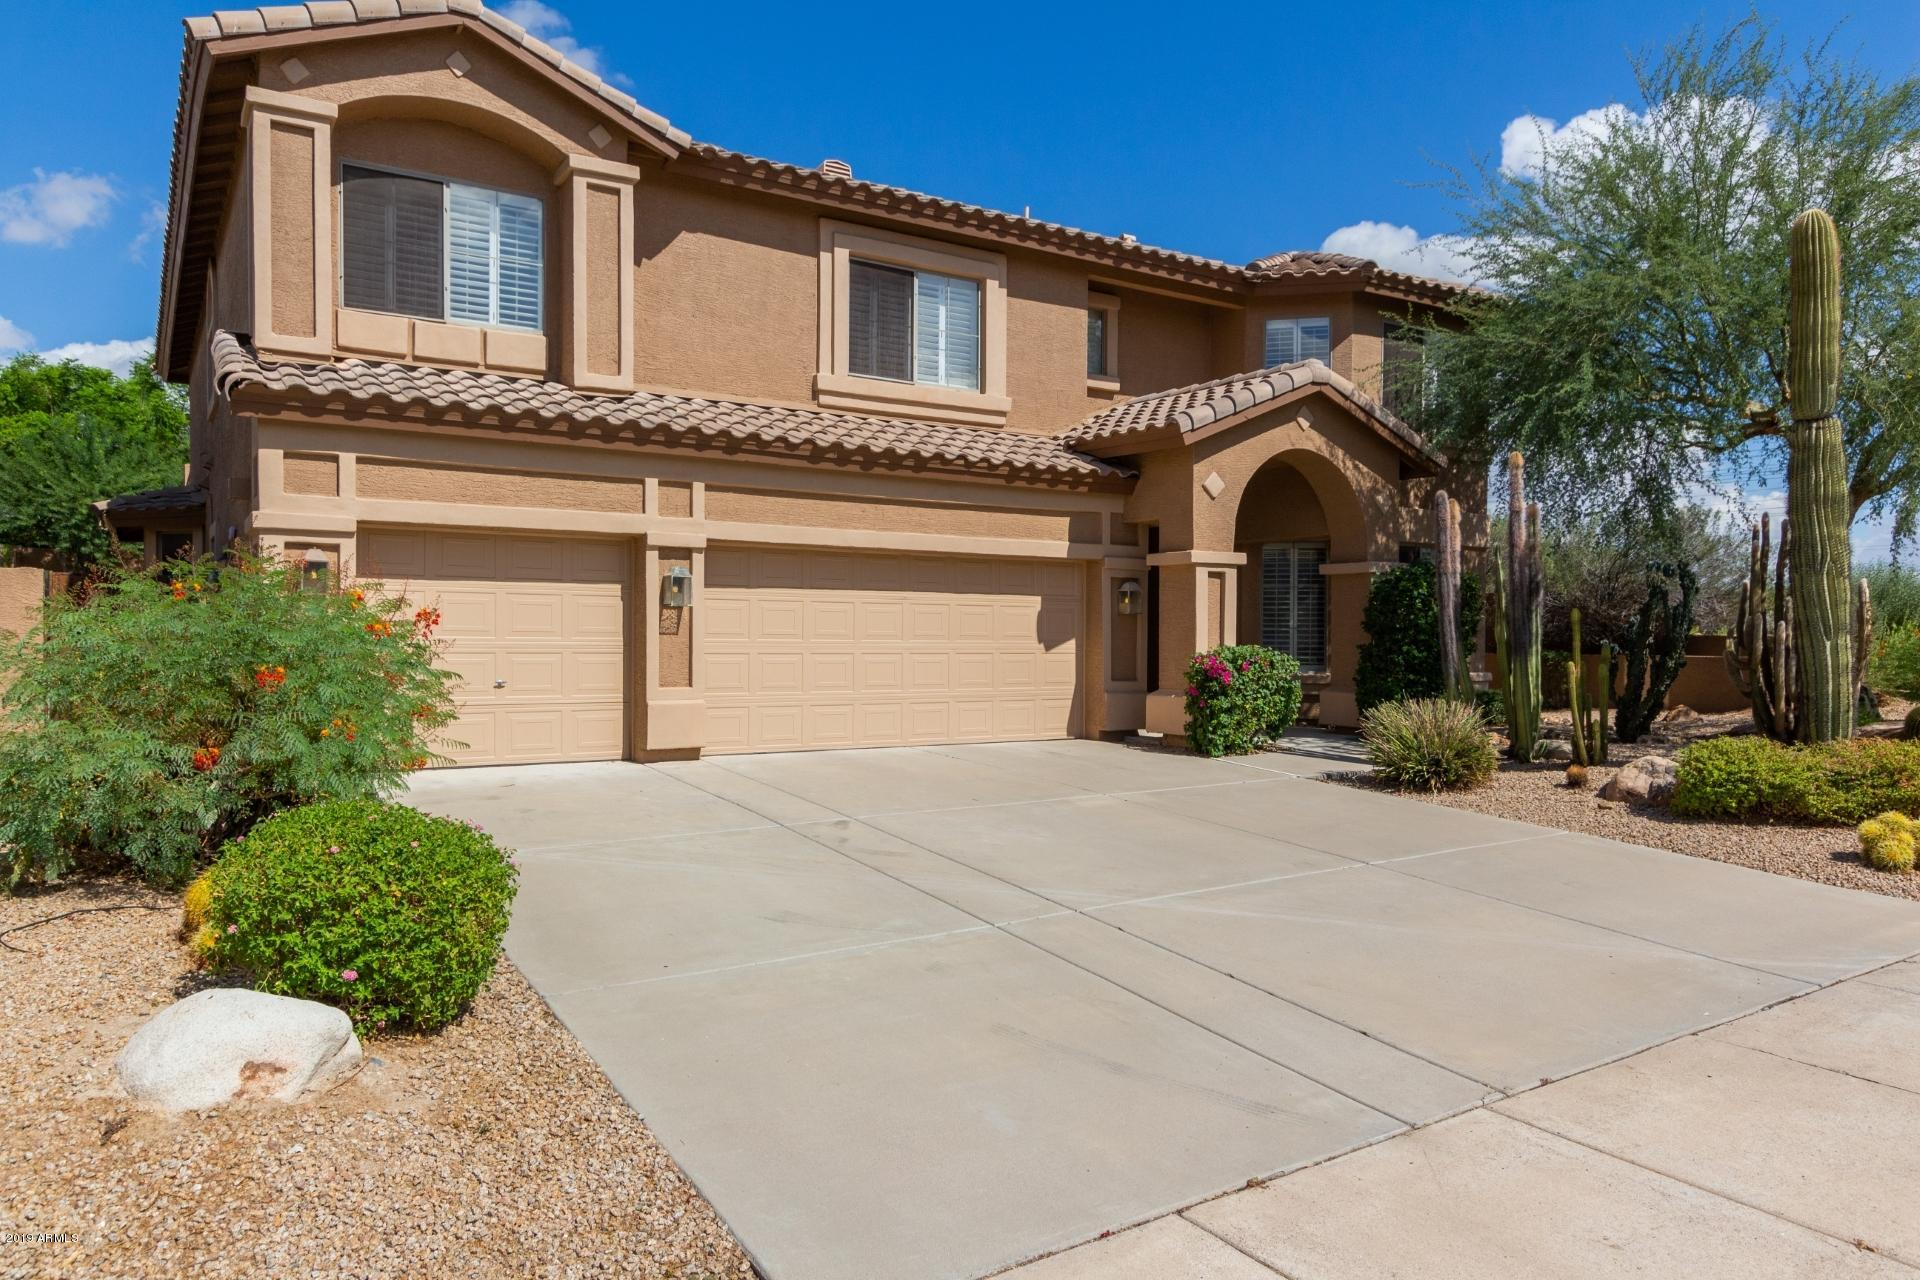 Photo of 7694 E ROSE GARDEN Lane, Scottsdale, AZ 85255